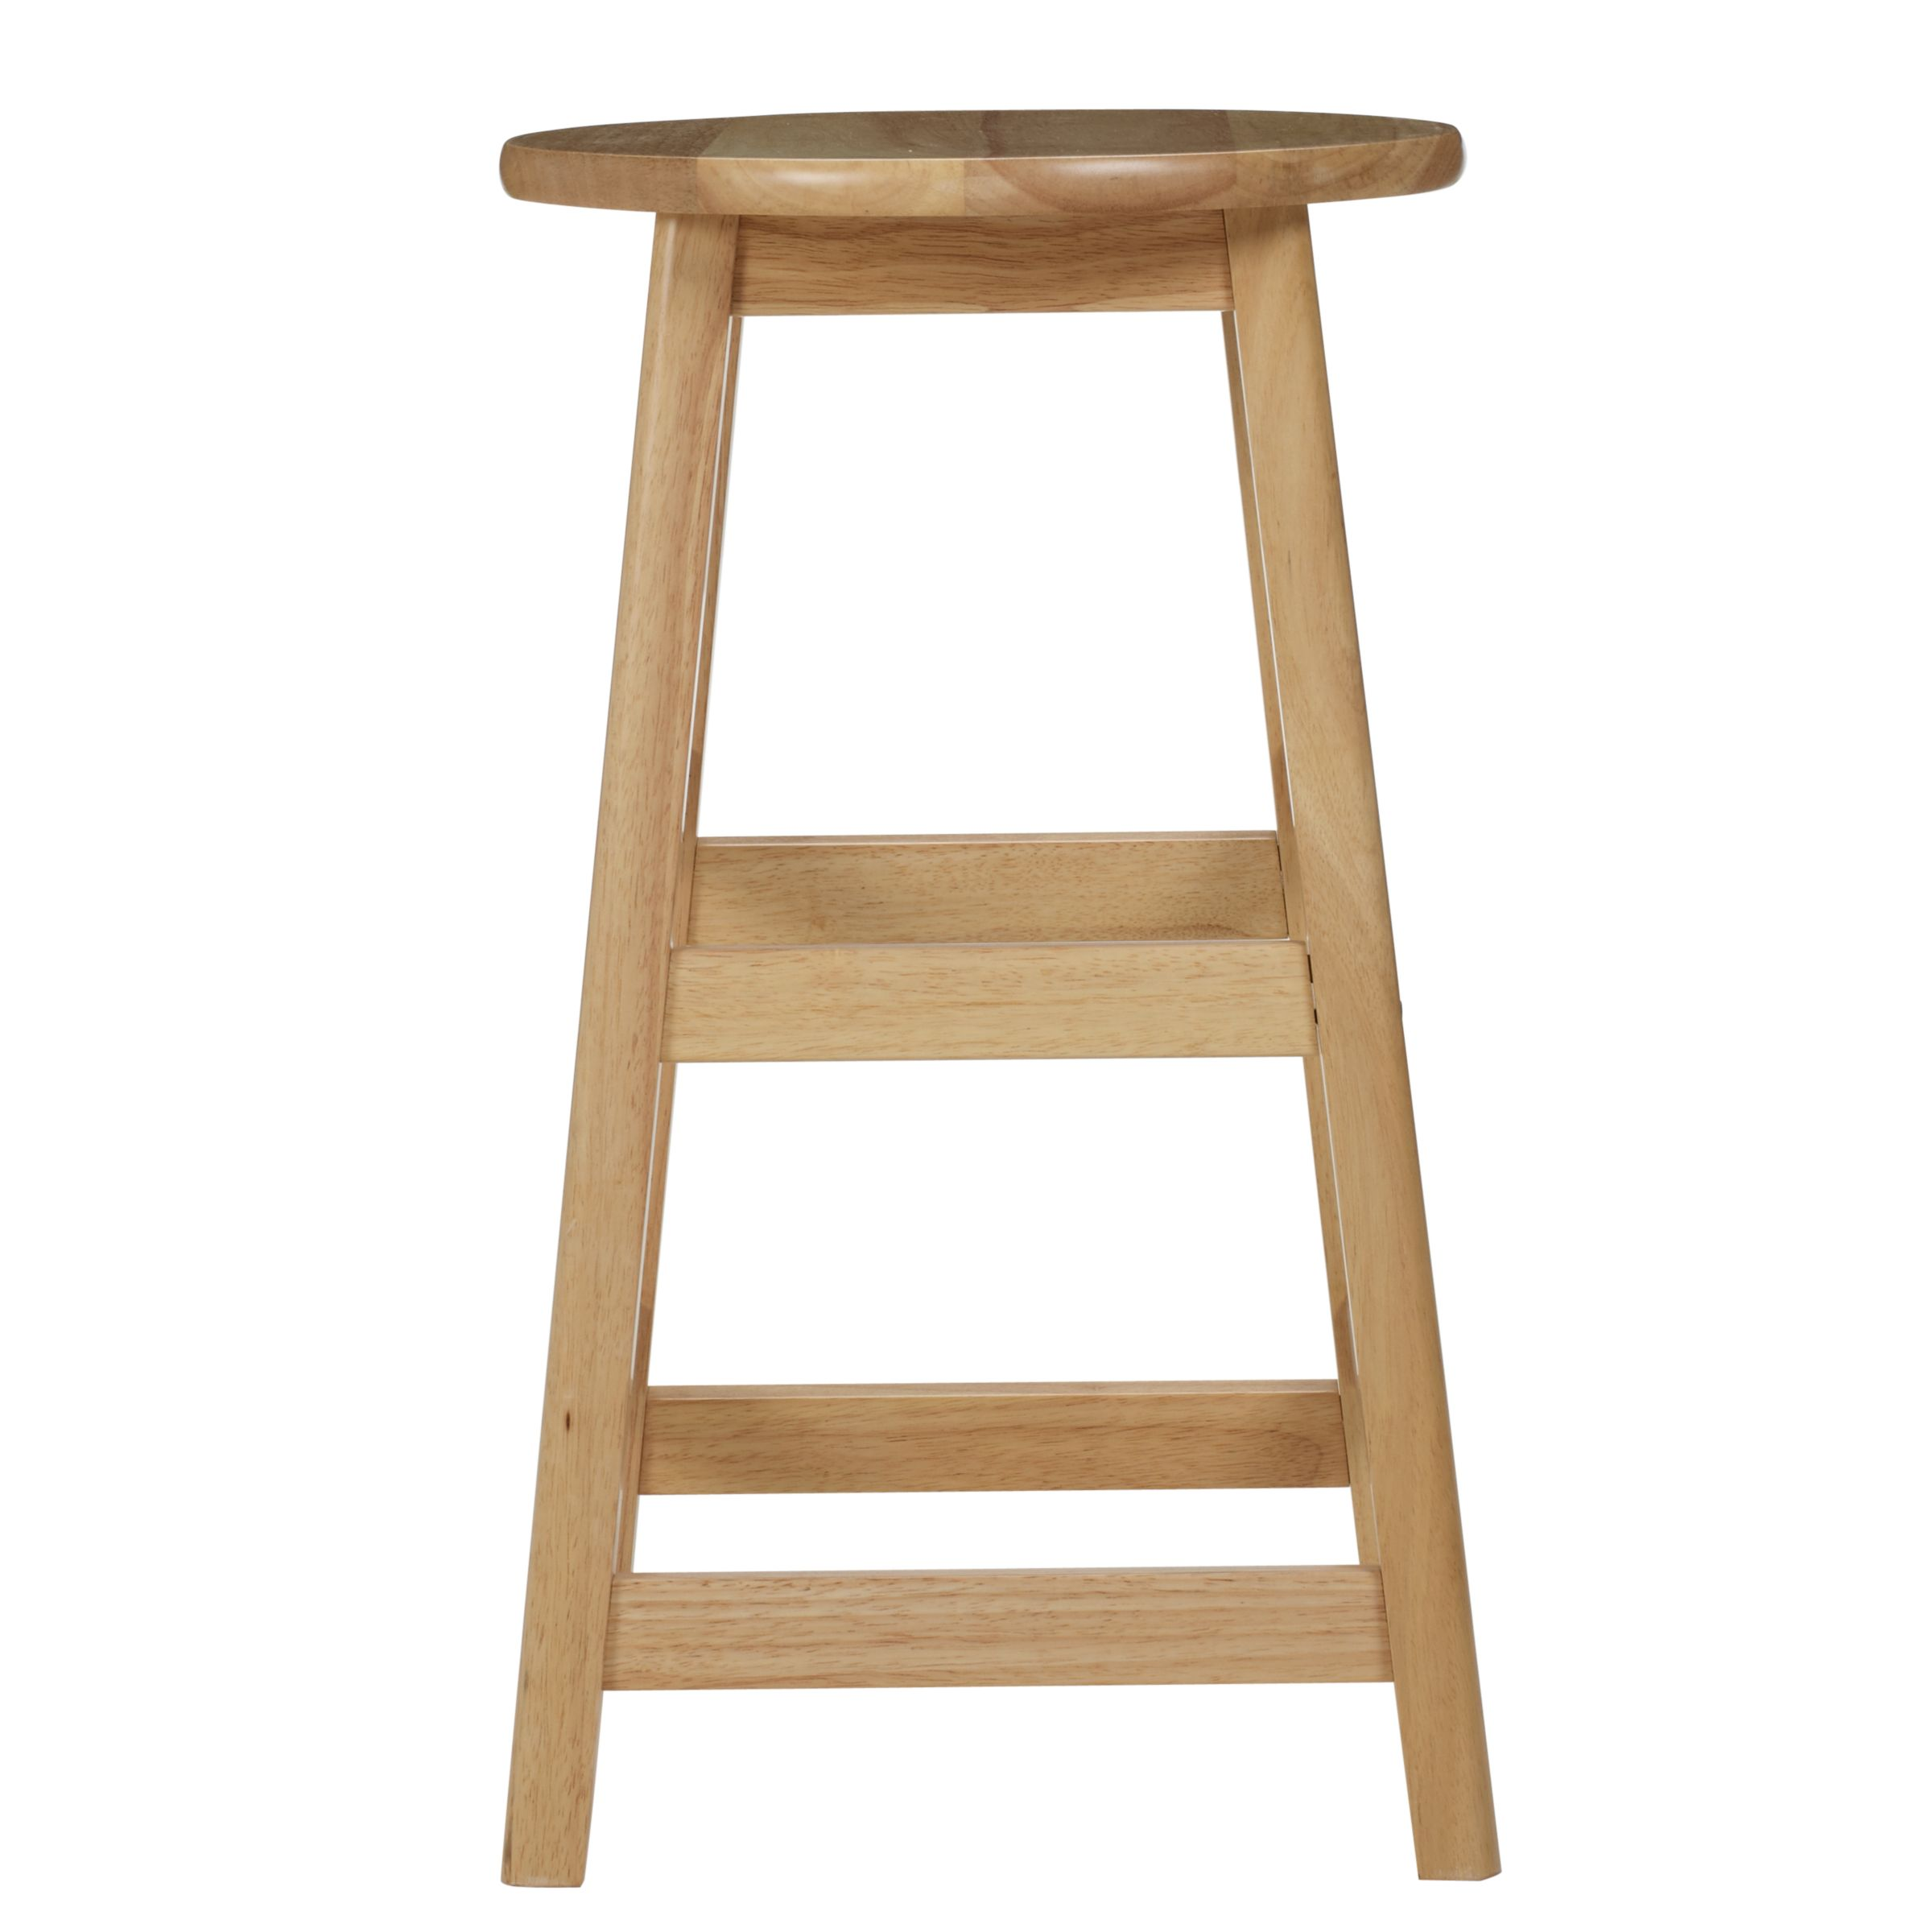 Kitchen breakfast bar stool Shop for cheap Chairs and  : 231130535zoom from www.priceinspector.co.uk size 2000 x 2000 jpeg 186kB